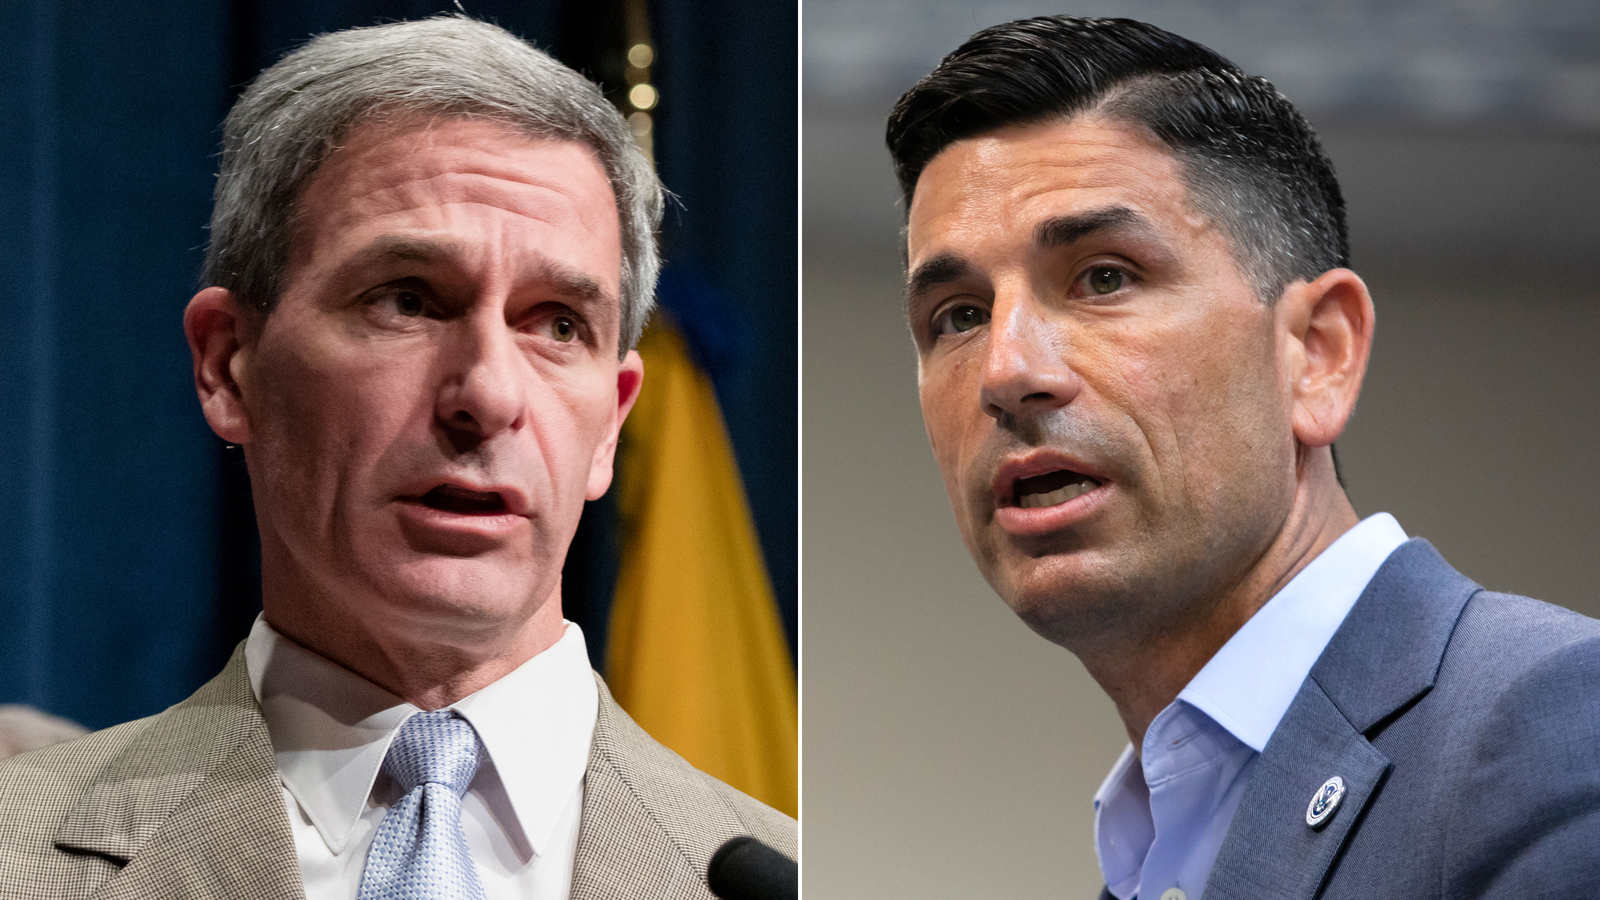 Appointments of Homeland Security leaders Wolf and Cuccinelli are 'invalid,' report says